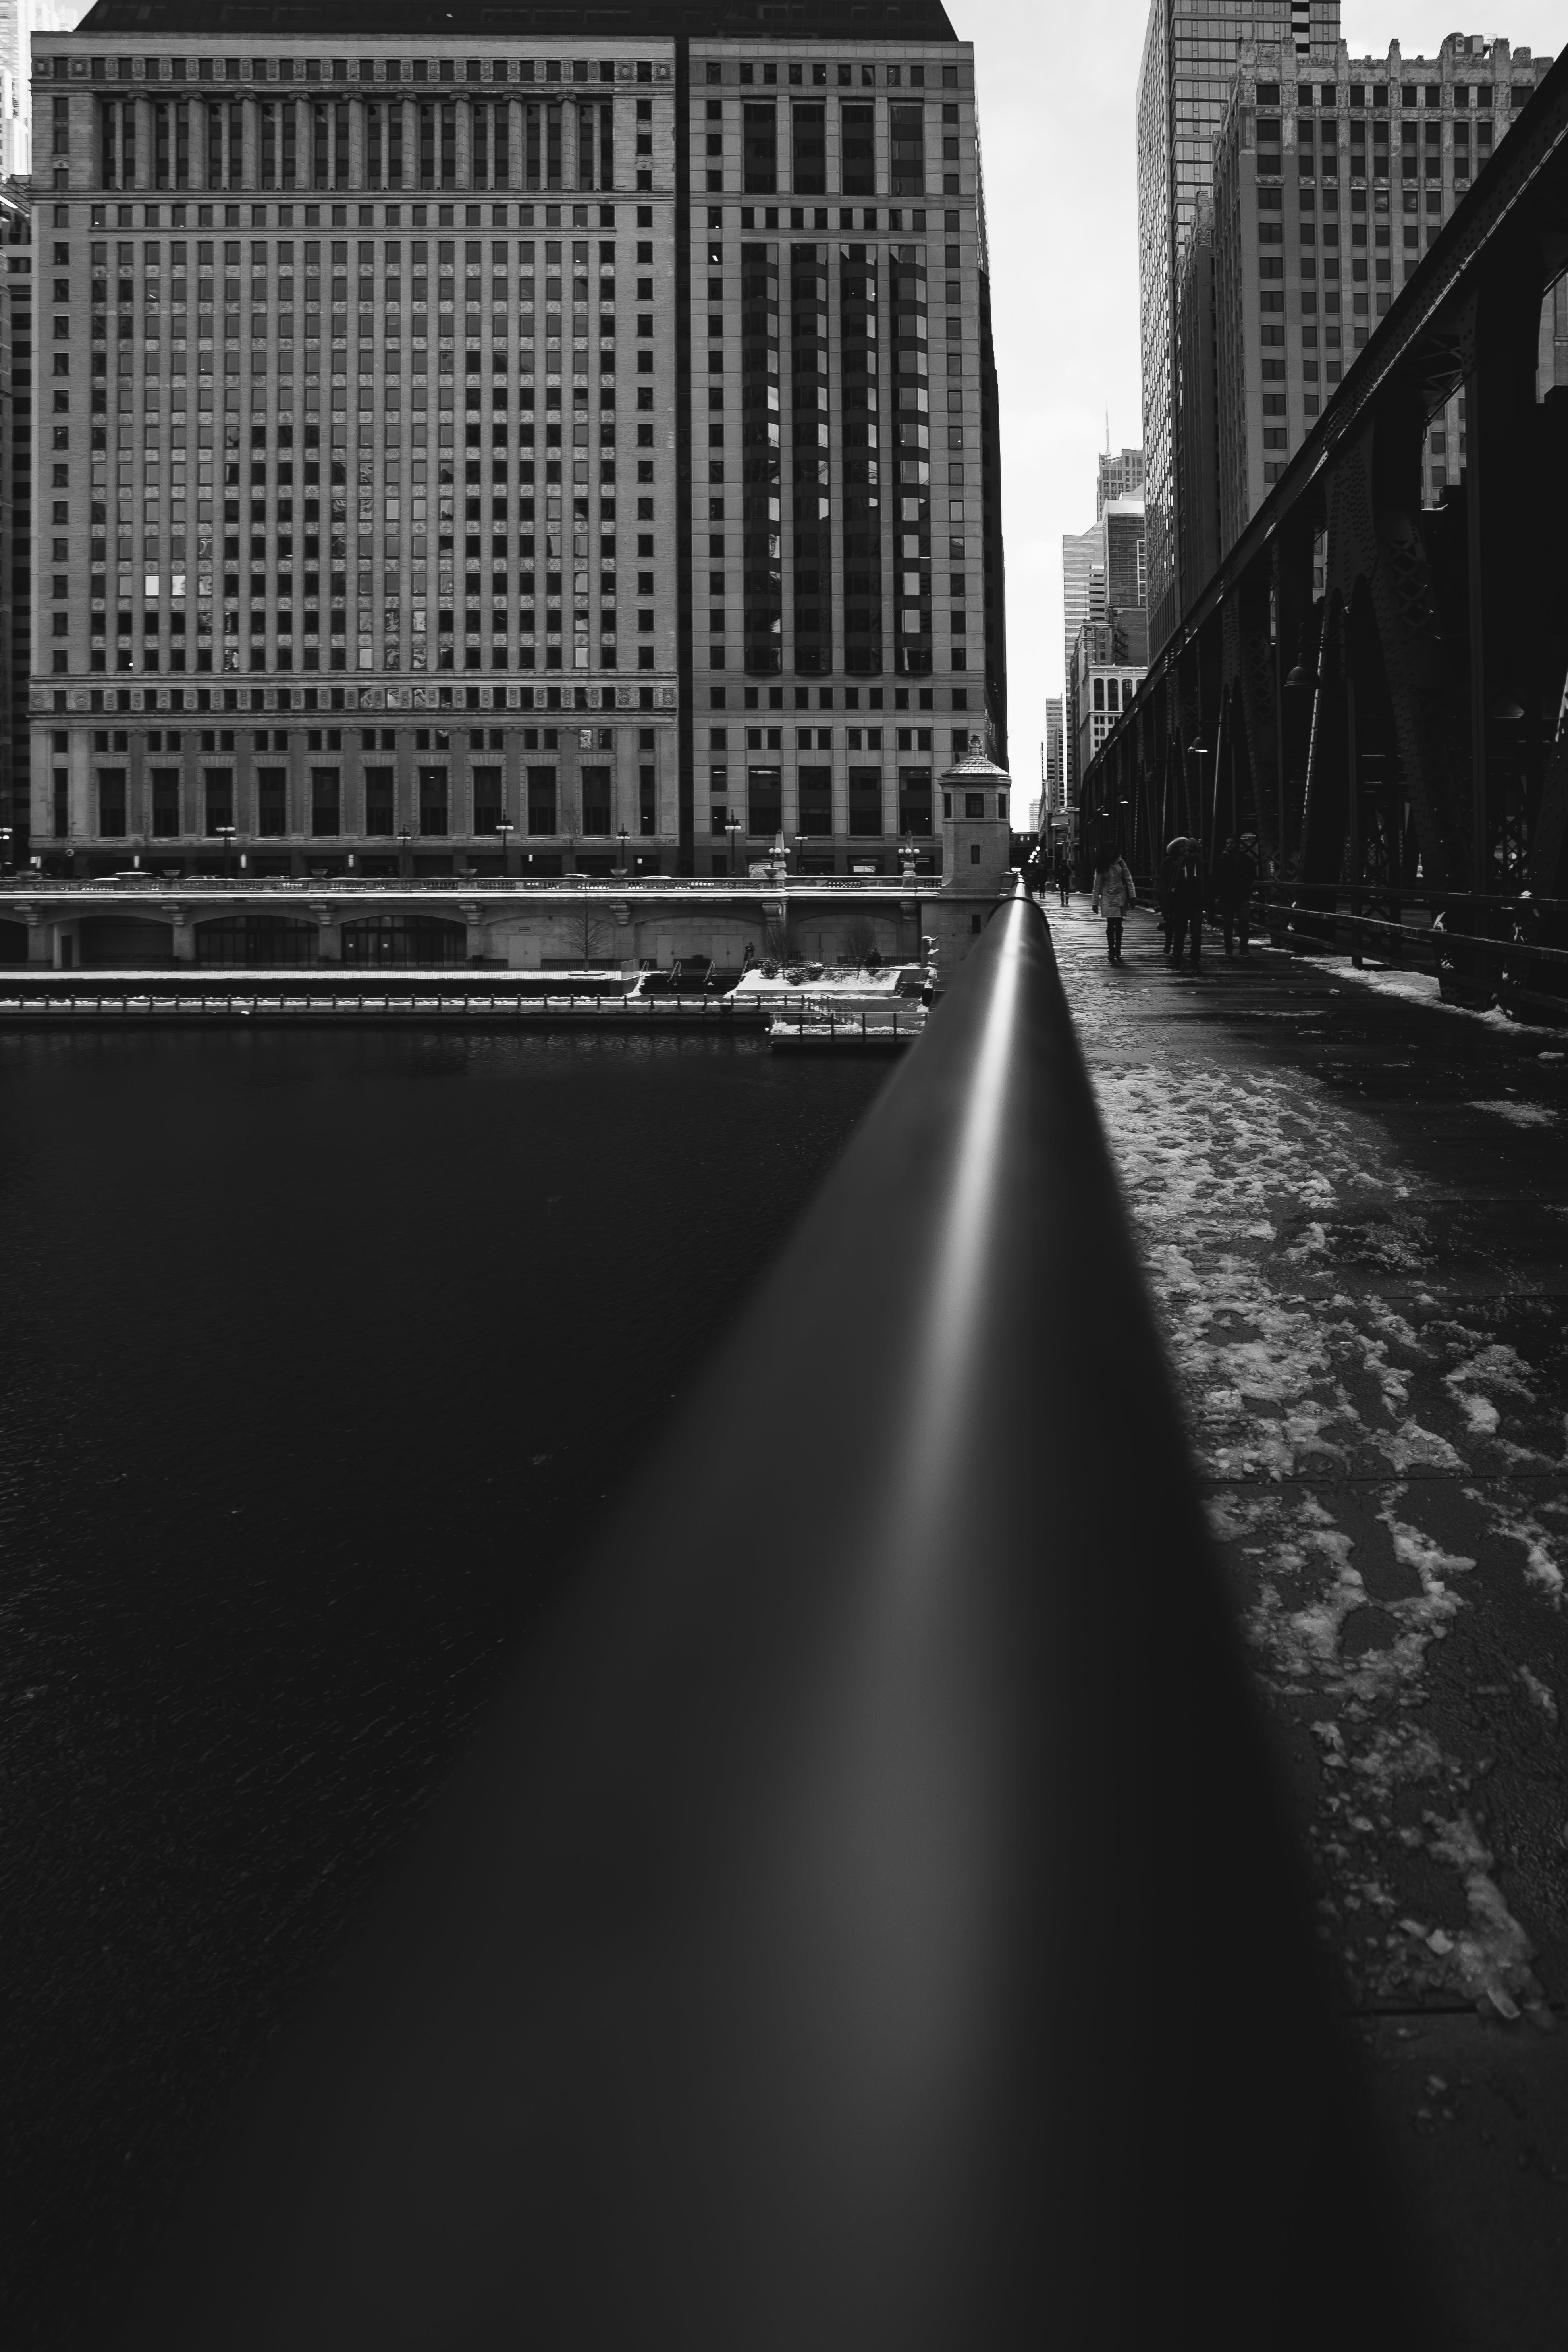 Grayscale Photography of Concrete Buildings